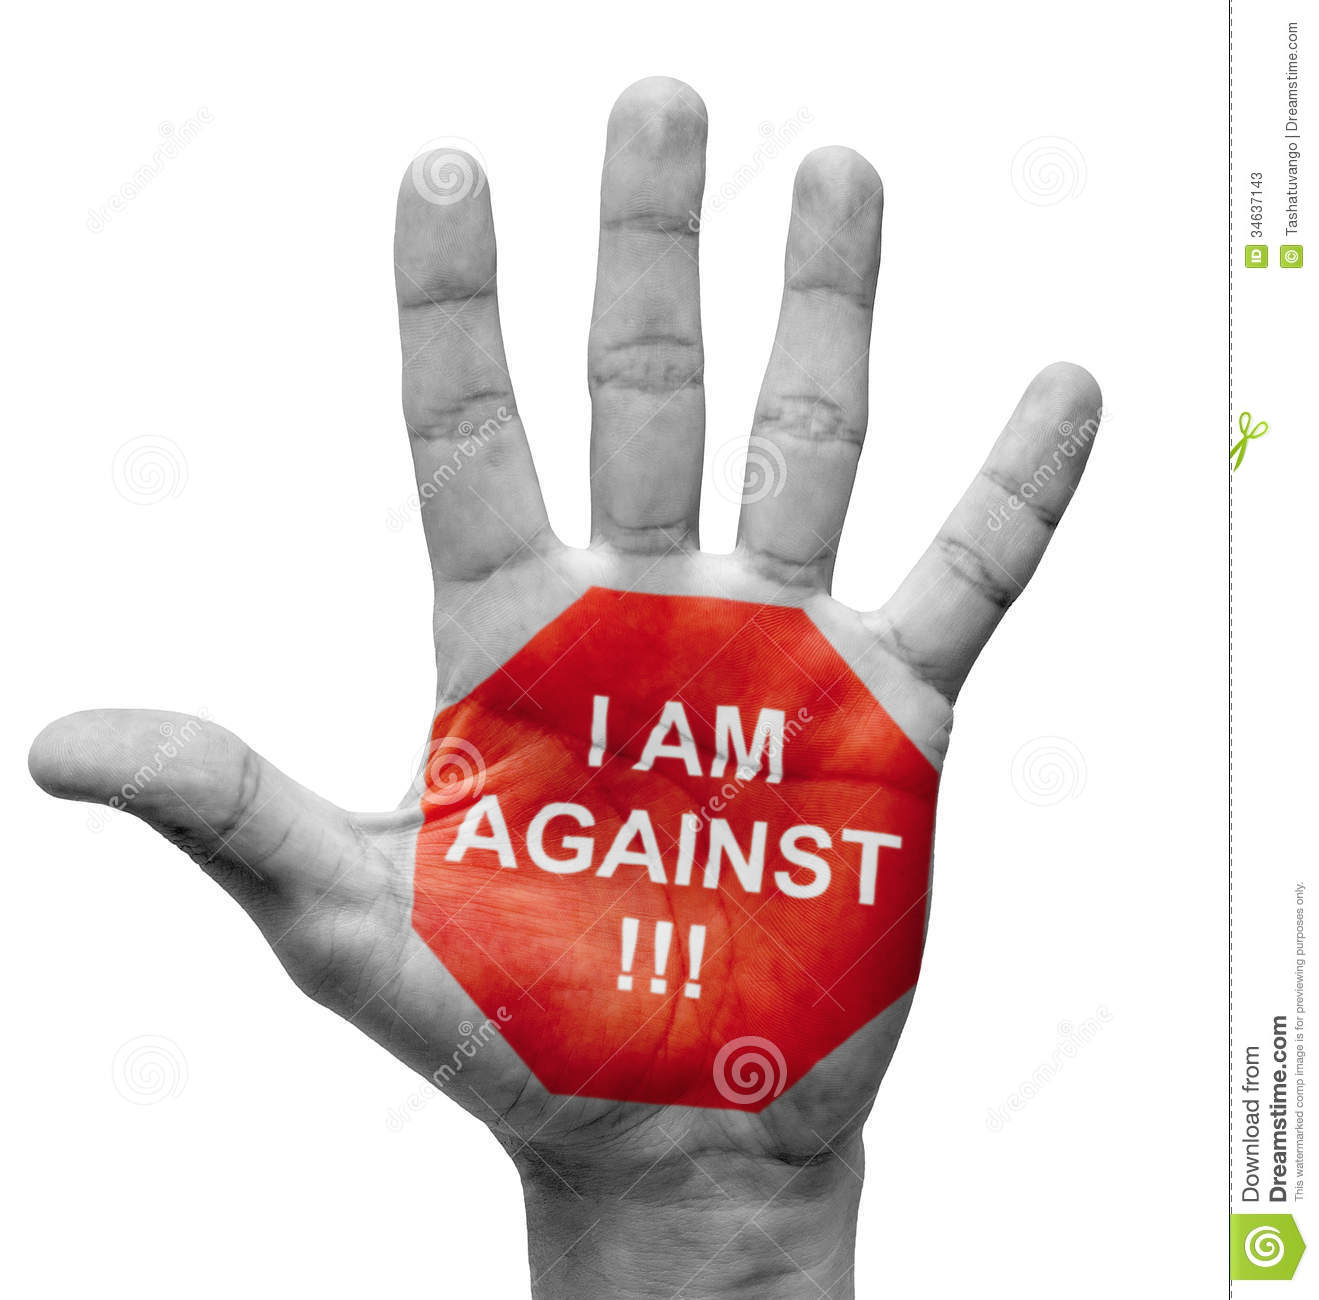 the concept of racism and abuse But racism does not require the full and explicit support of the state and the law nor does it require an ideology centered on the concept of biological inequality discrimination by institutions.